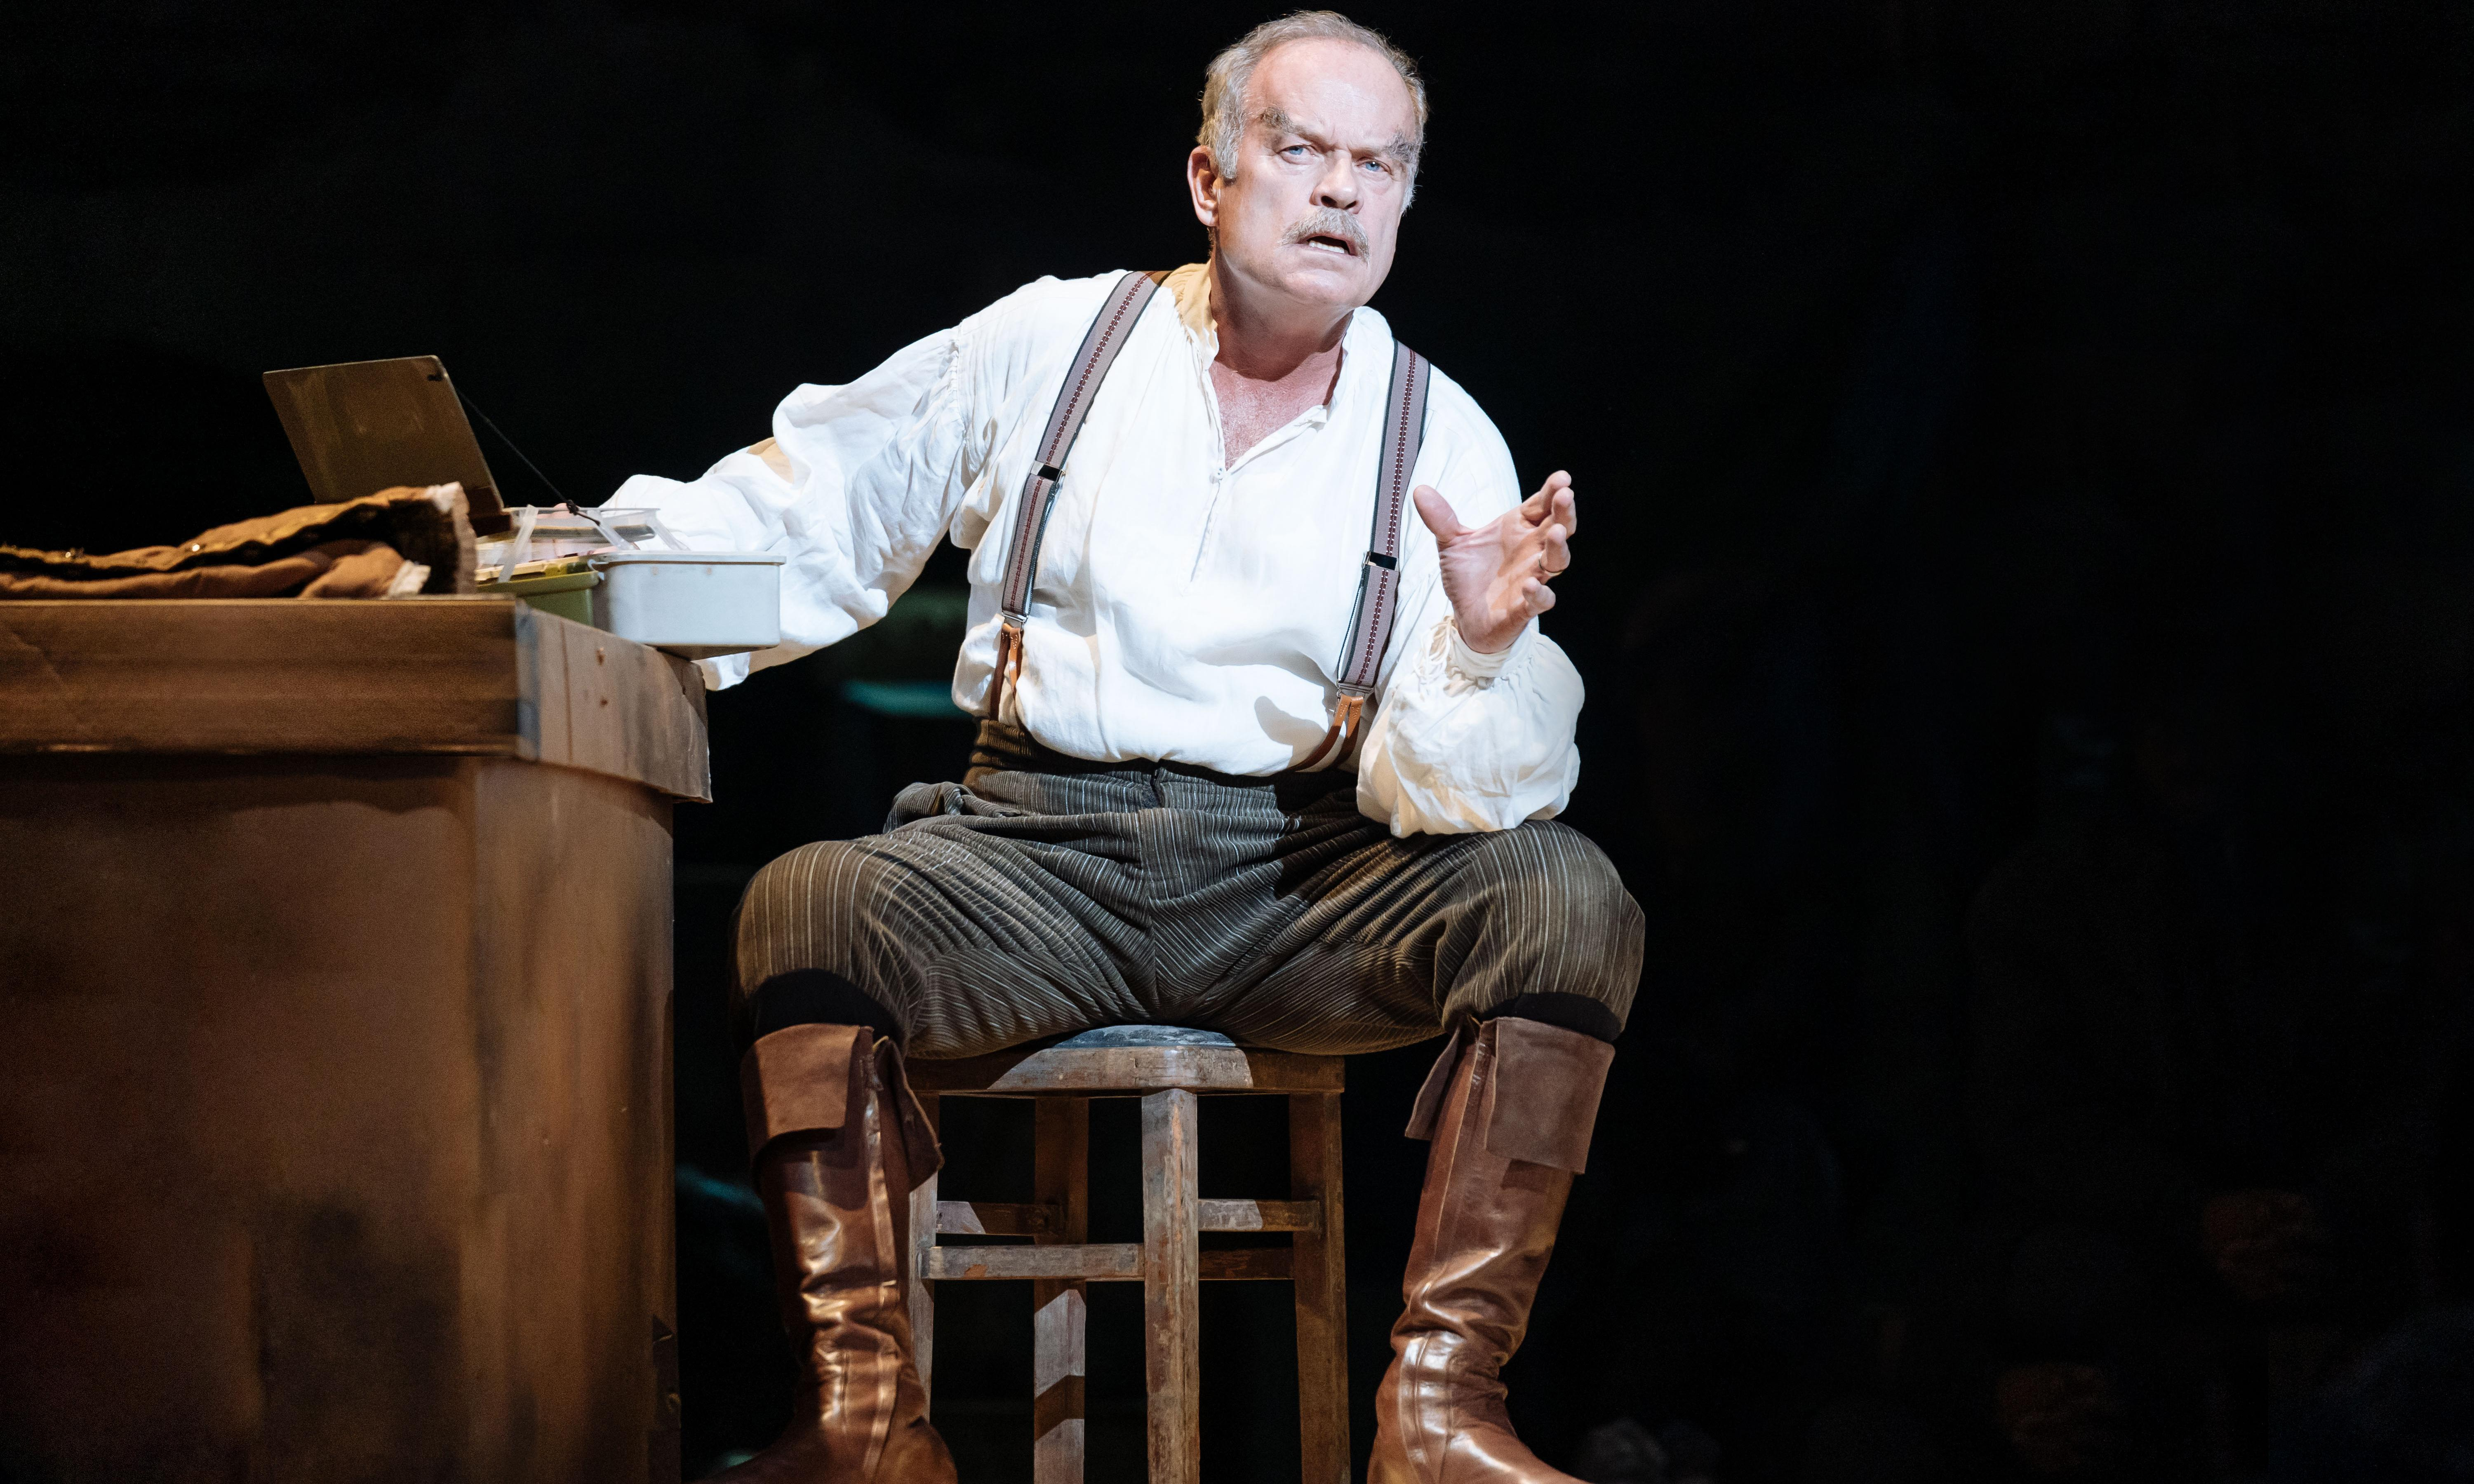 Kelsey Grammer mercifully reaches the end of his sentence